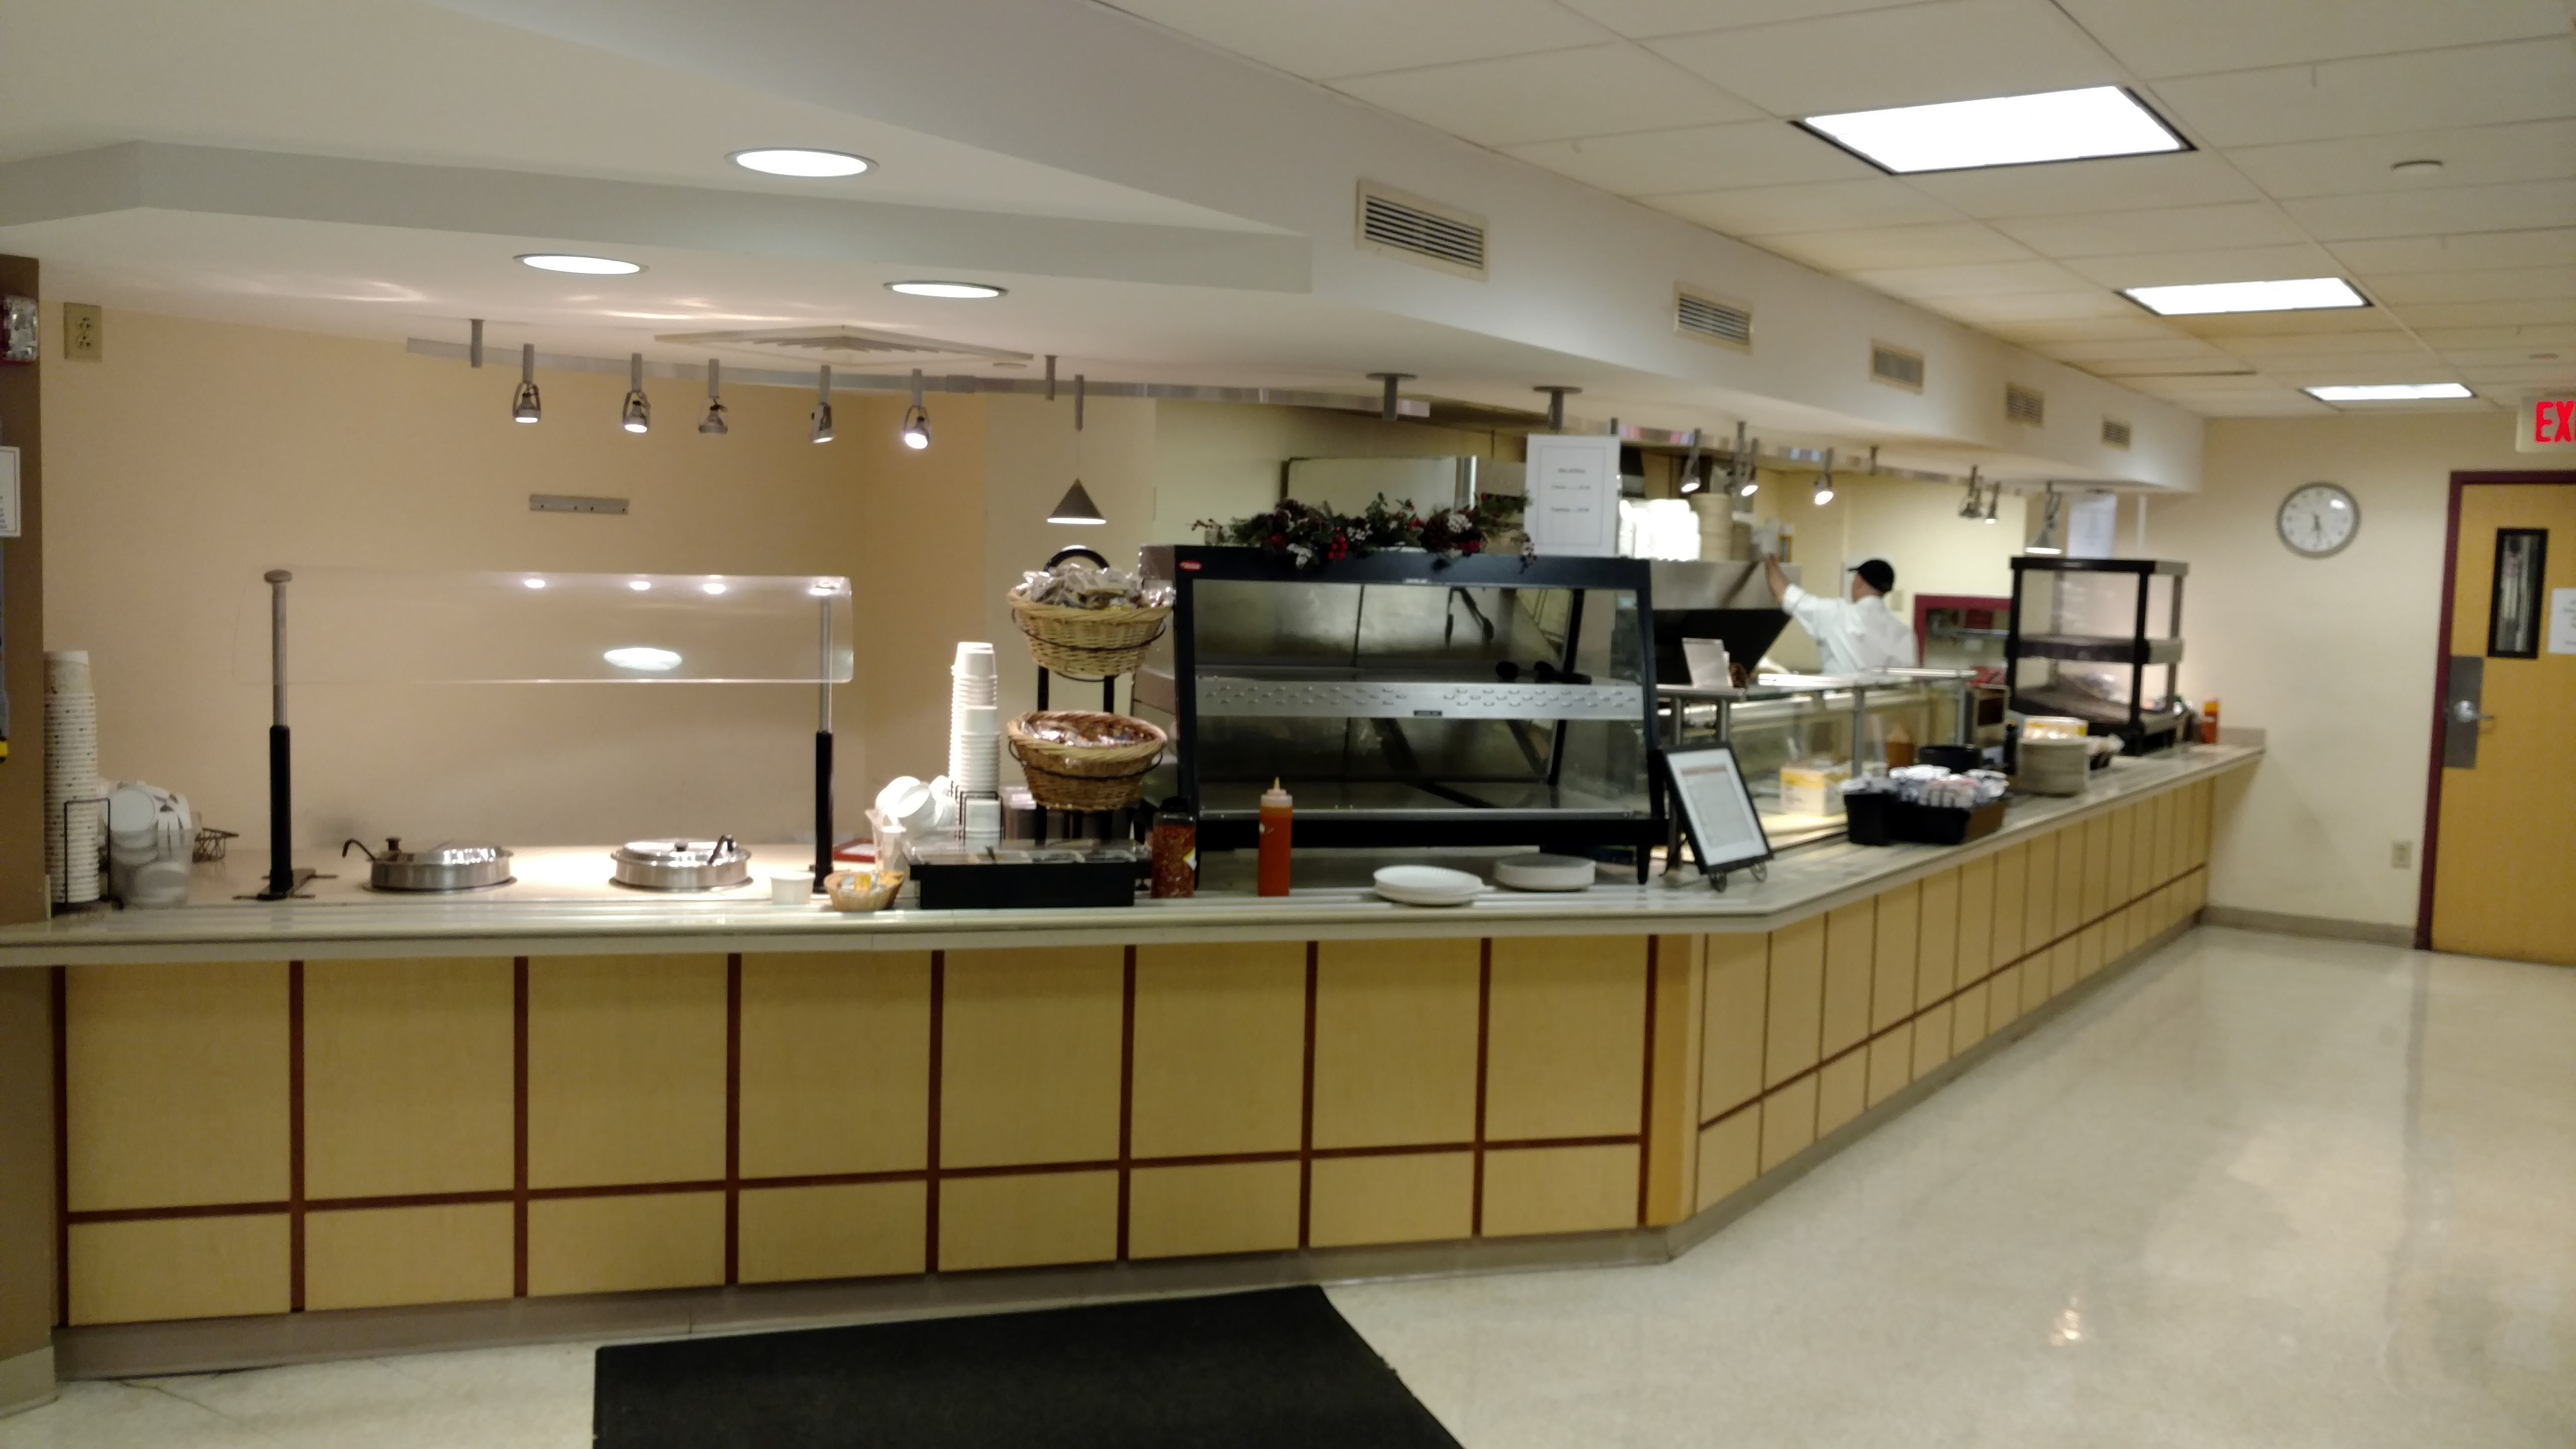 Overall View of the Mount Auburn Hospital Cafeteria Stations